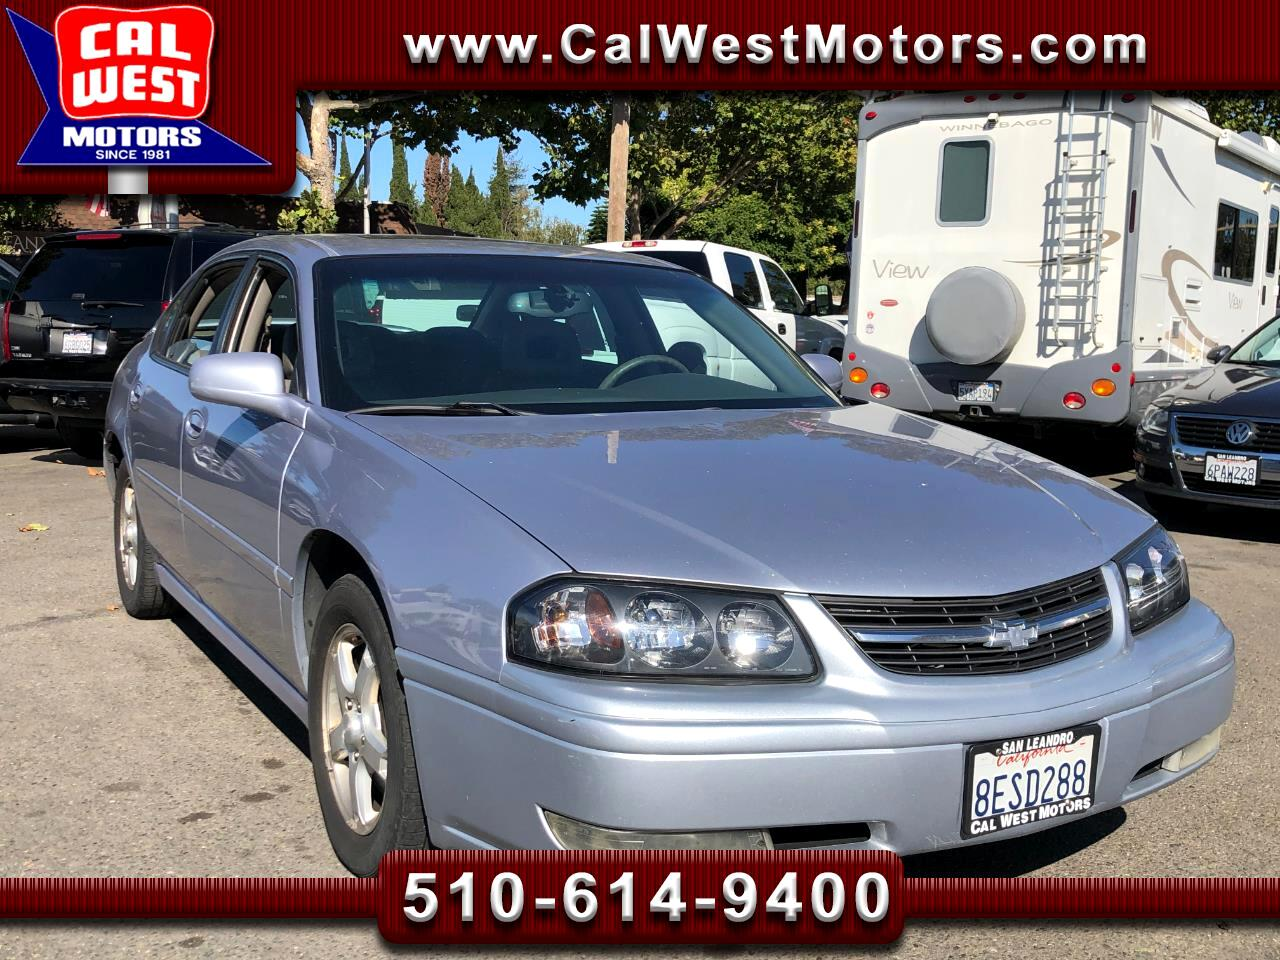 2005 Chevrolet Impala LS Sedan Sturdy 3.8L V6 MoonRf CD Leathr WellMaint